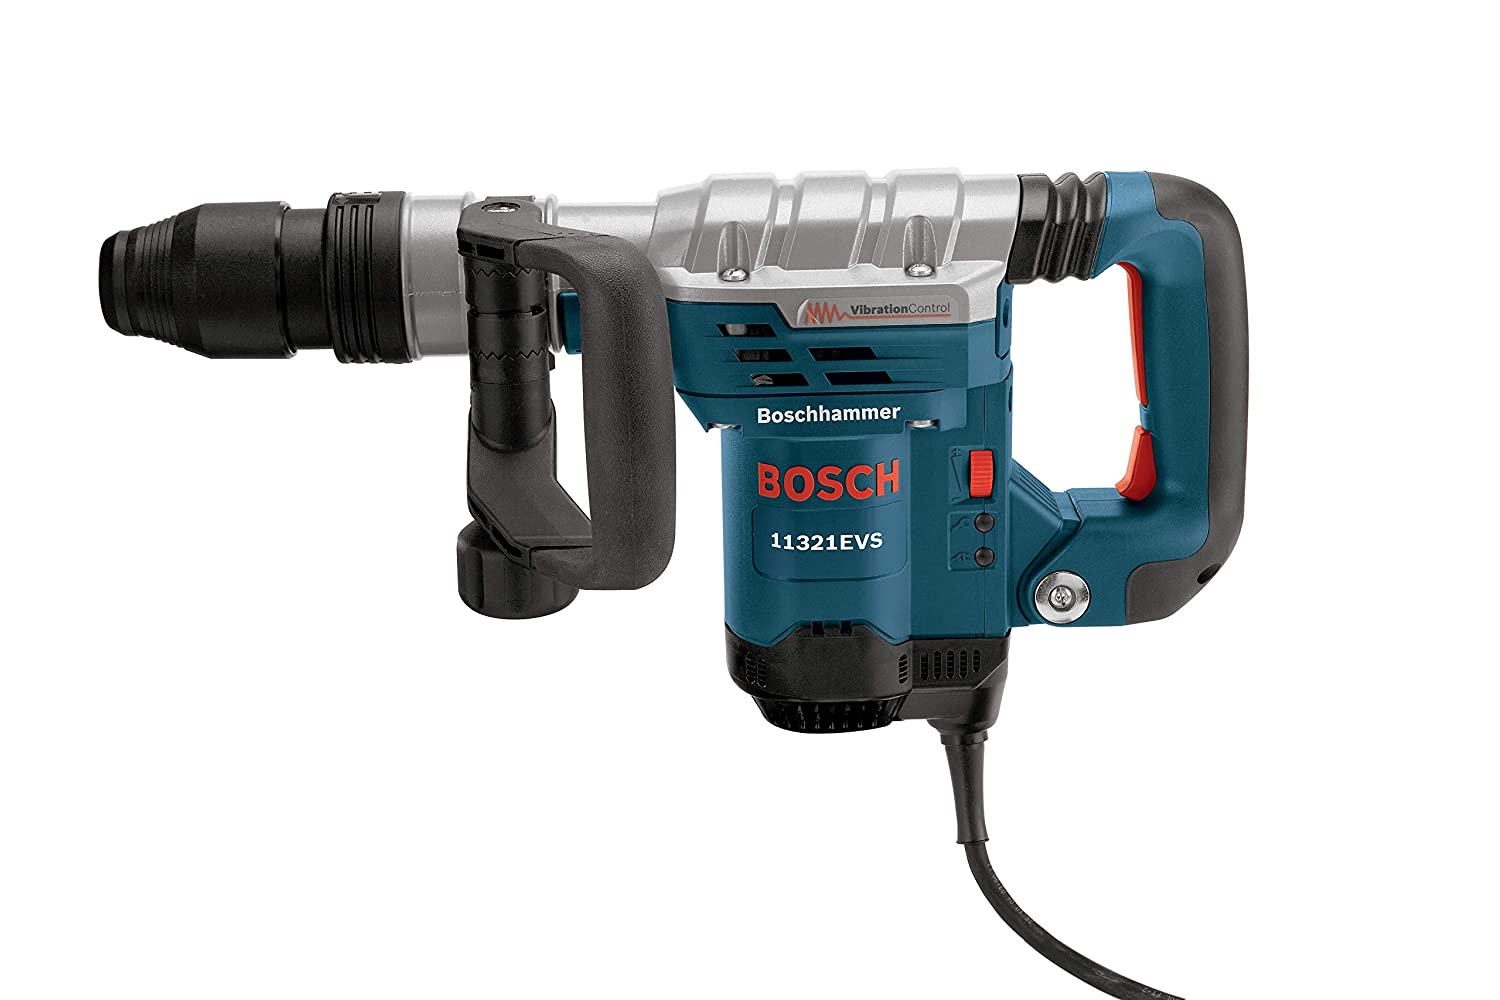 Bosch 11321EVS Demolition Hammer - 13 Amp 1-9/16 in. Corded Variable Speed SDS-Max Concrete Demolition Hammer with Carrying Case 81Zploy54vL